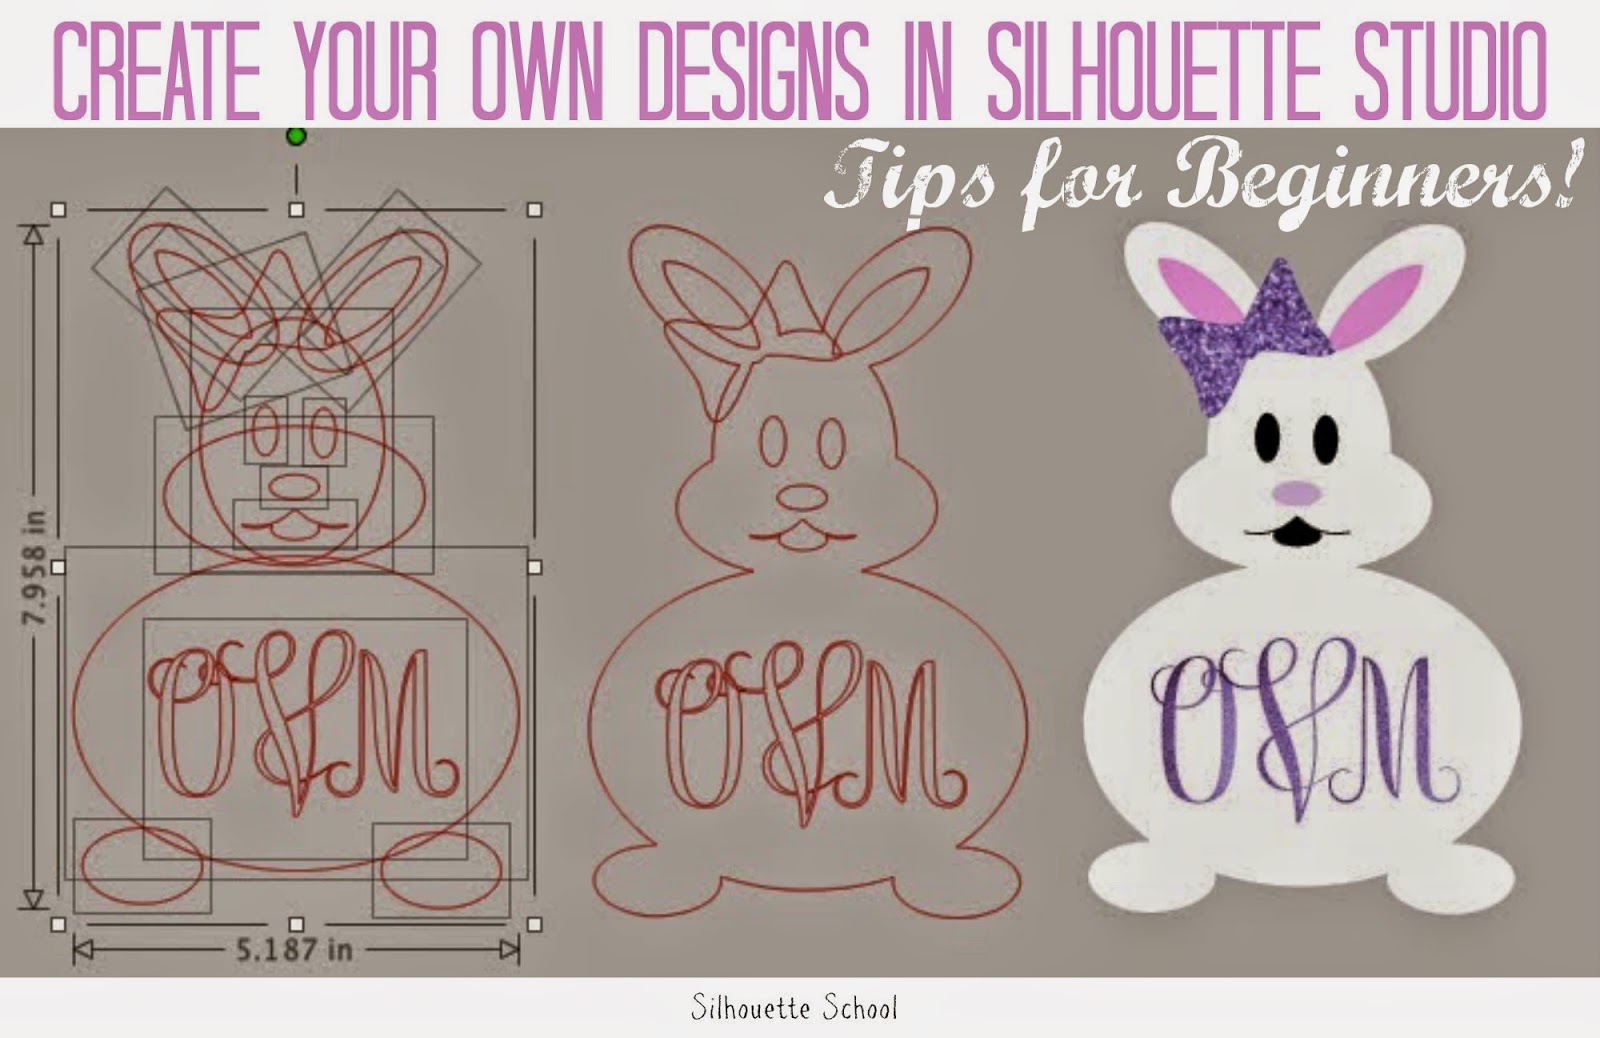 designing your own shapes in silhouette studio tips for beginners [ 1600 x 1038 Pixel ]